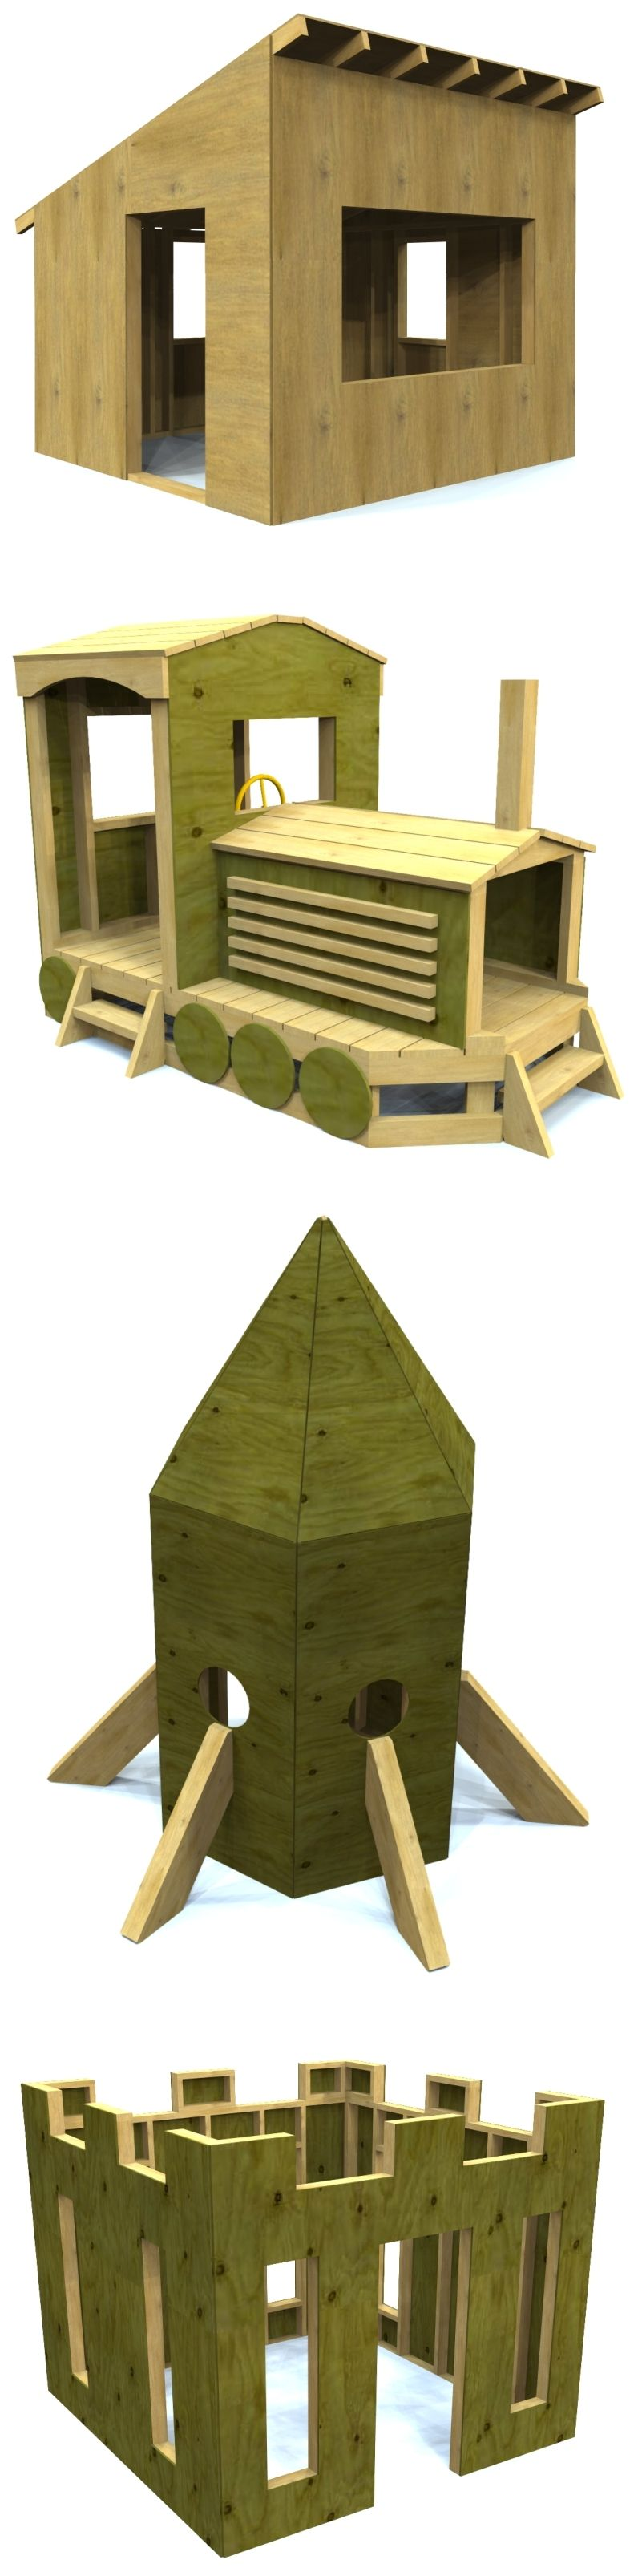 12 Free Playhouse Plans You Can Build Perfect For Any Diyer Who Wants To Build Their Child A Playhouse Play Houses Playhouse Plans Woodworking Projects Plans